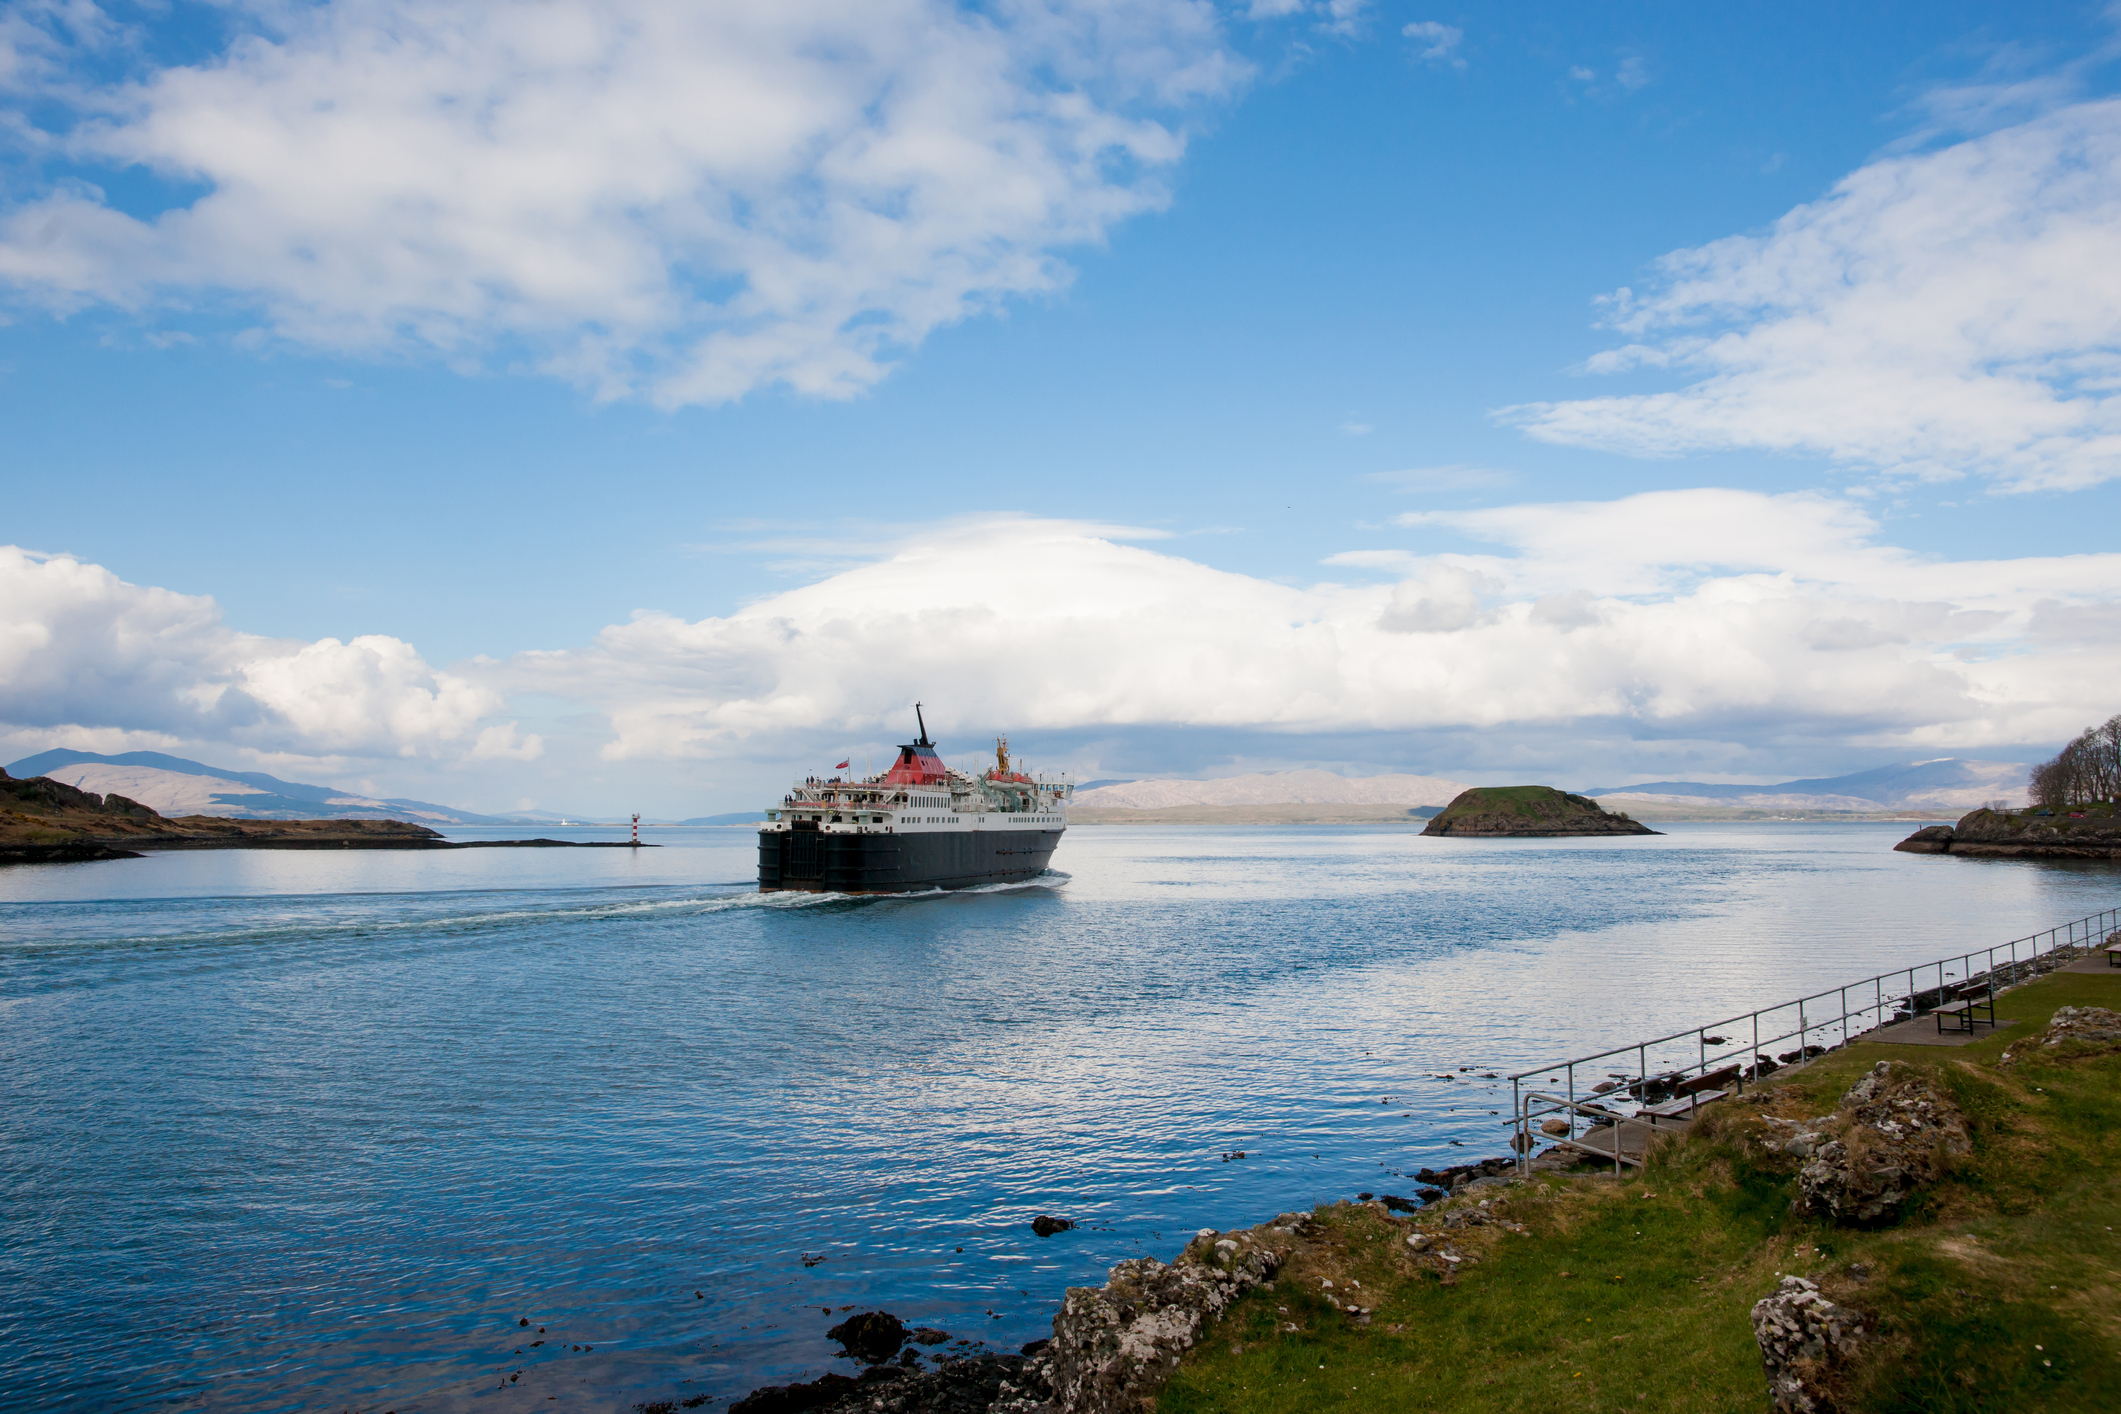 Anger over 'oldest ferry in CalMac history' replacement